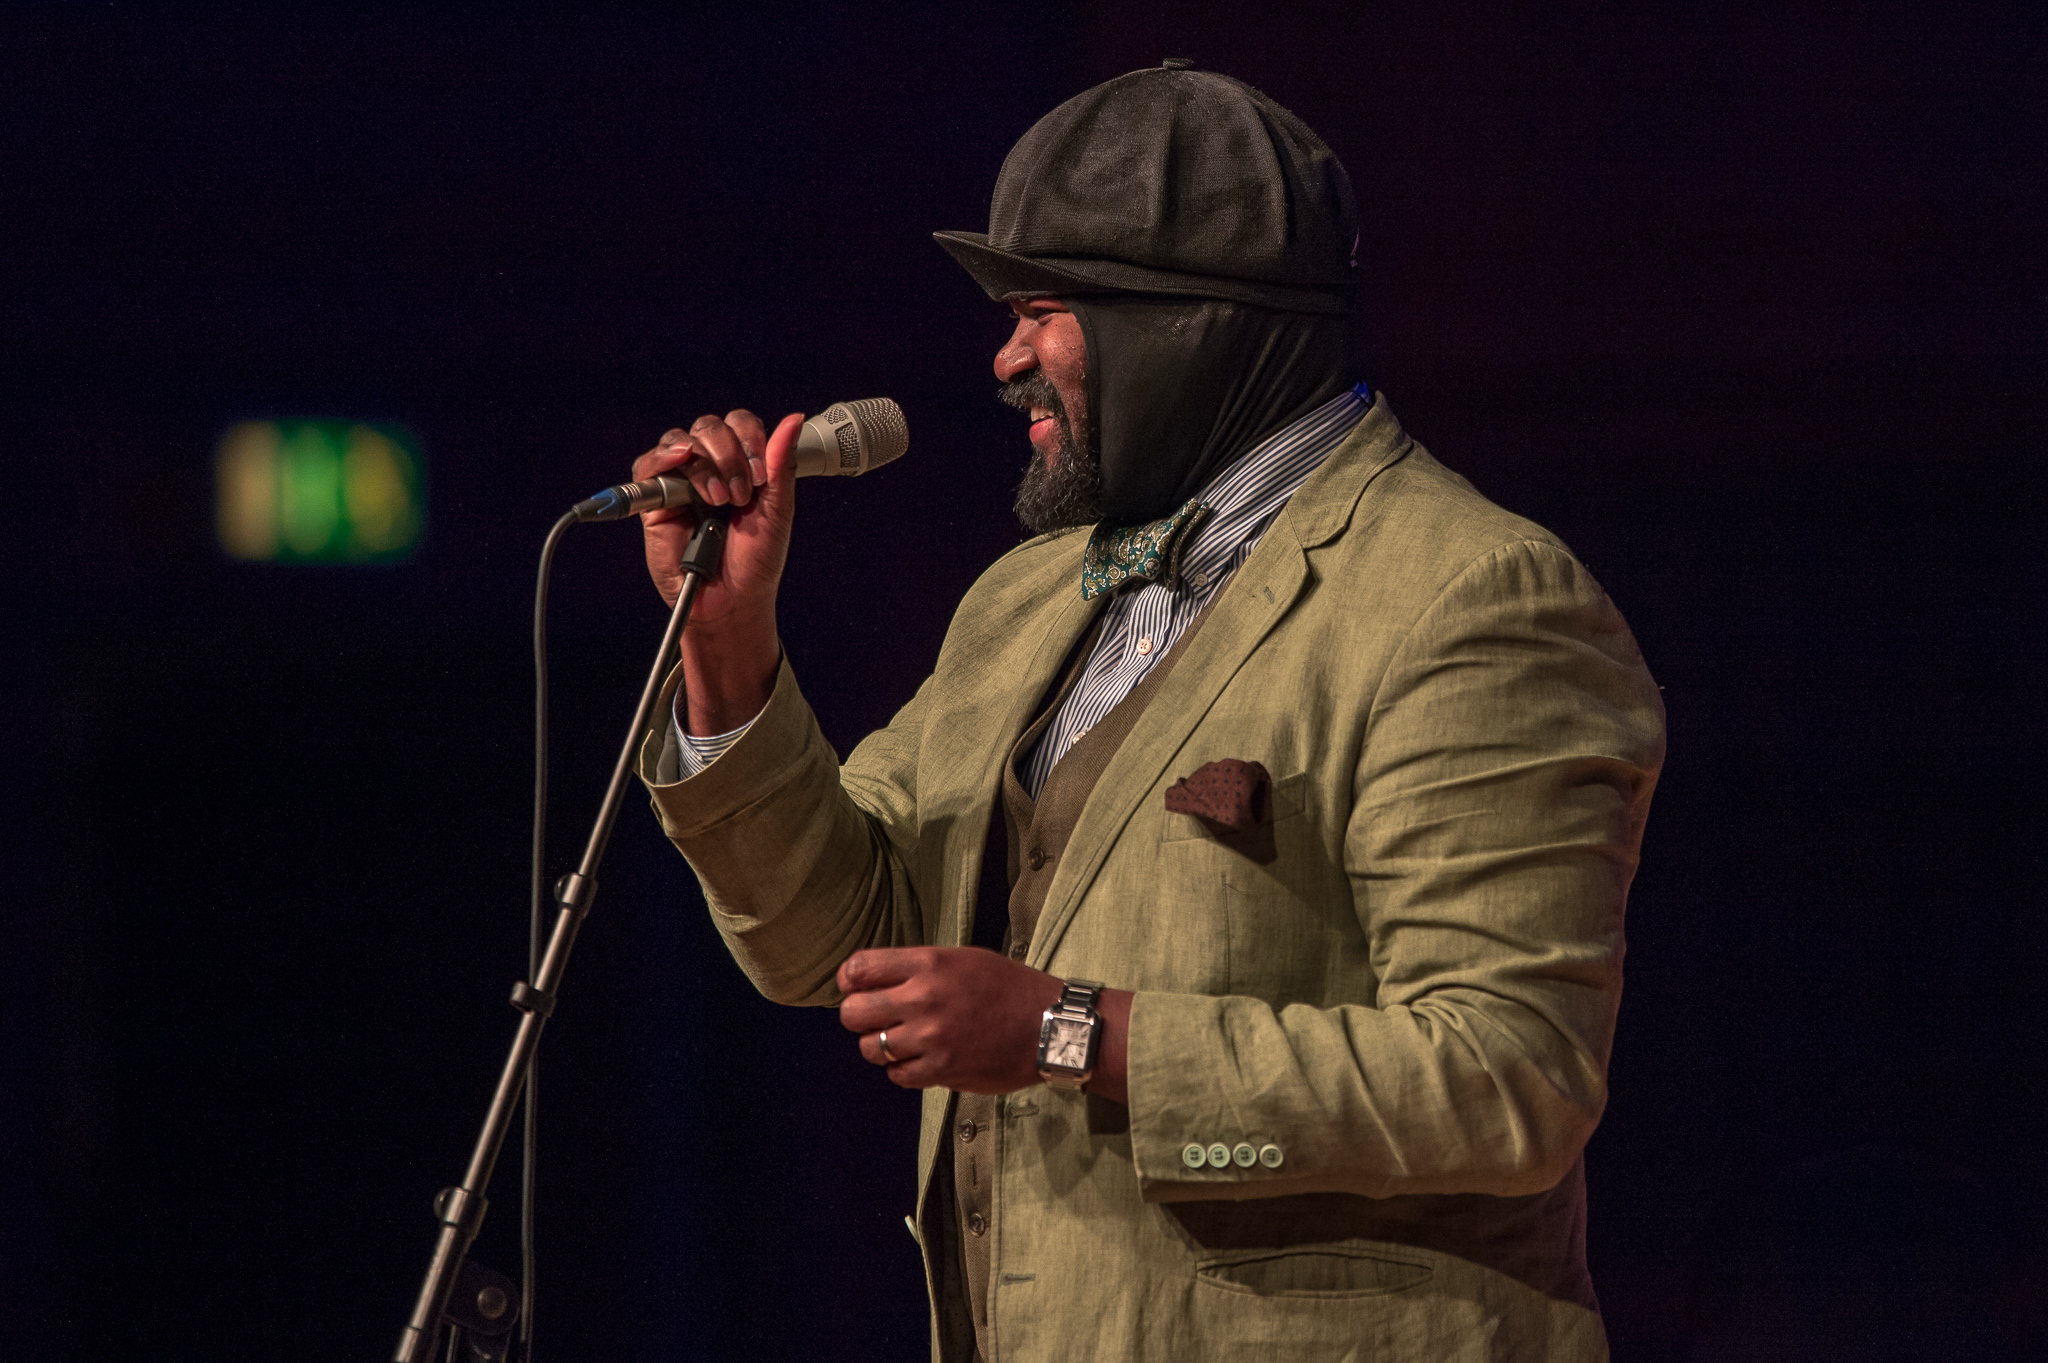 Le Meilleur File 2016 Gregory Porter By 2Eight Dsc5197 Jpg Ce Mois Ci